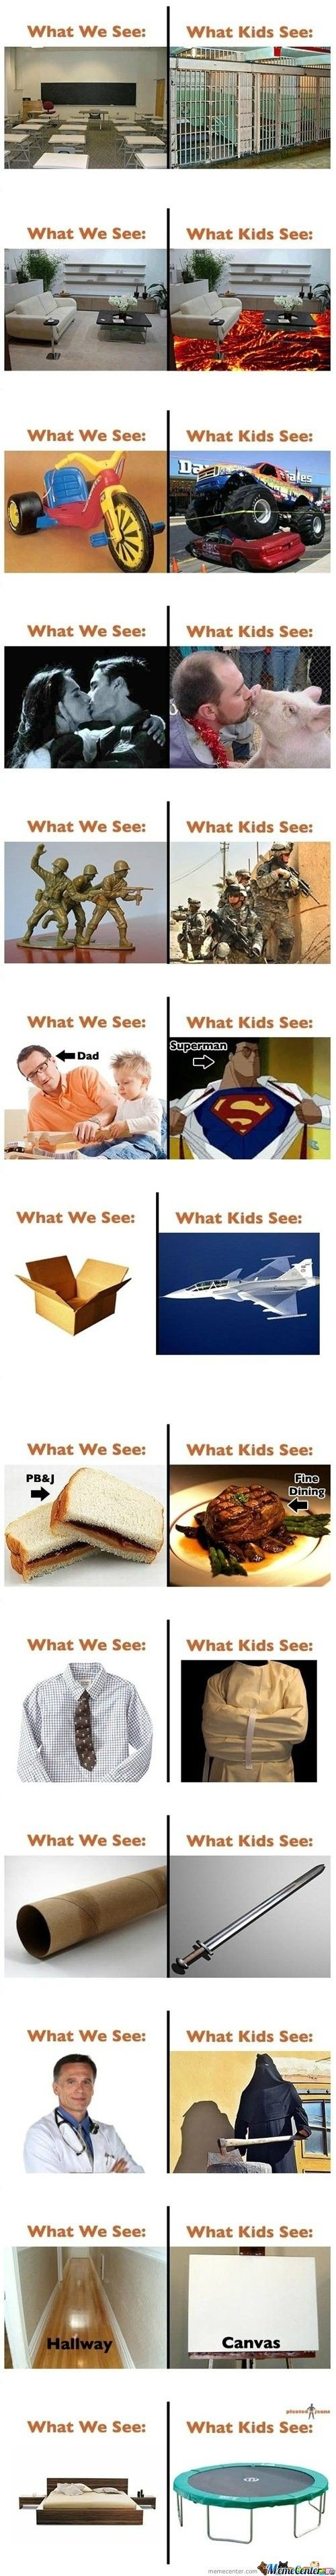 What adults see vs what kids see - true:p